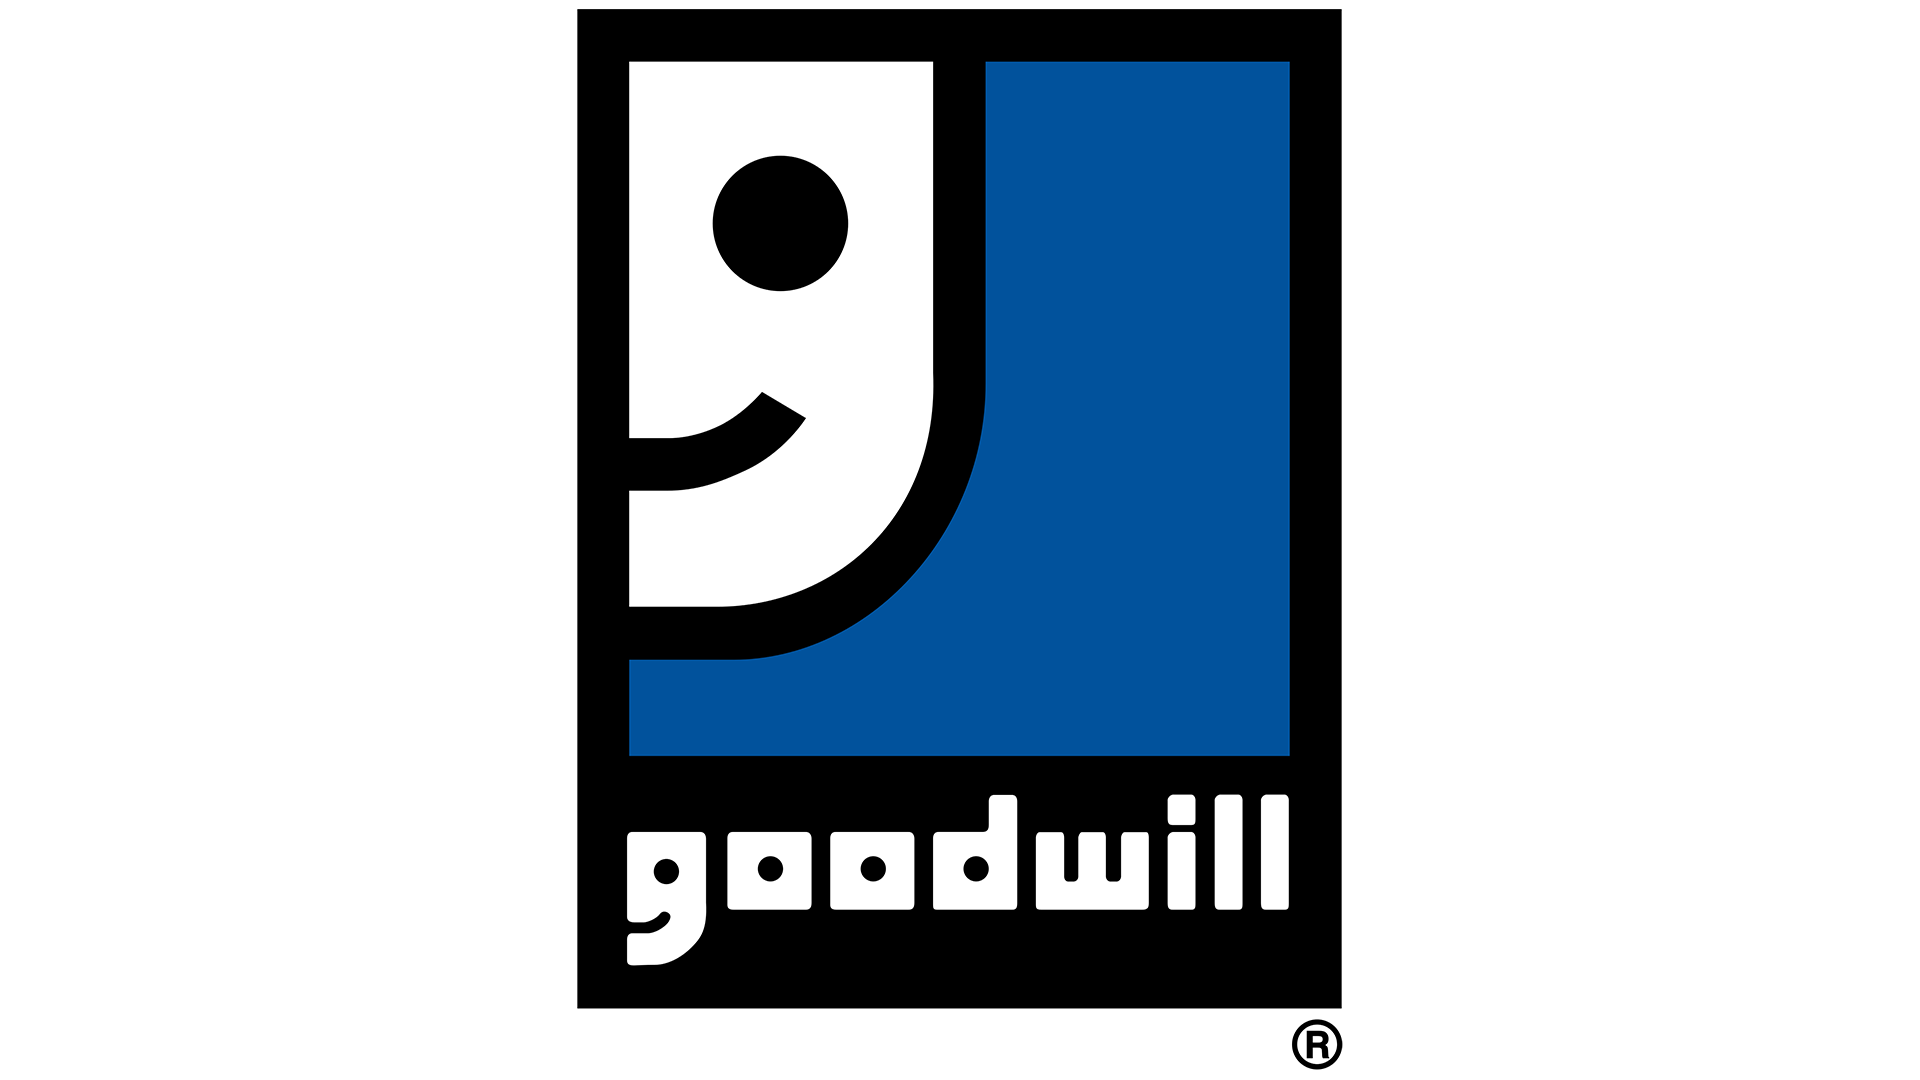 Goodwill - Building Purchase & Workplace Strategy